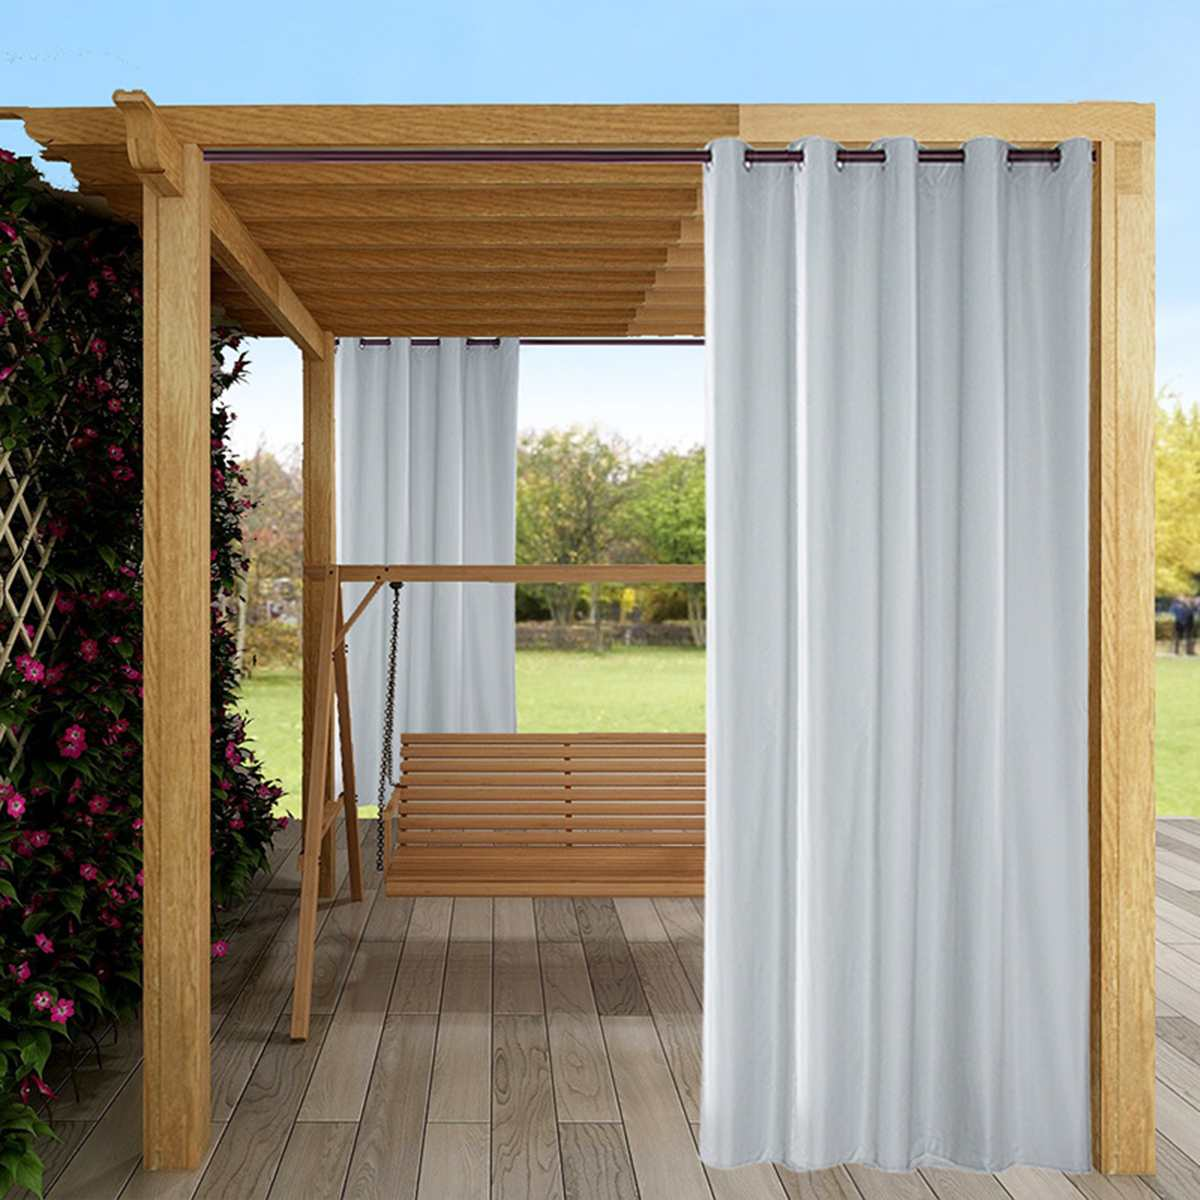 outdoor waterproof curtain tab top thermal insulated blackout curtain drape for patio garden front porch gazebo